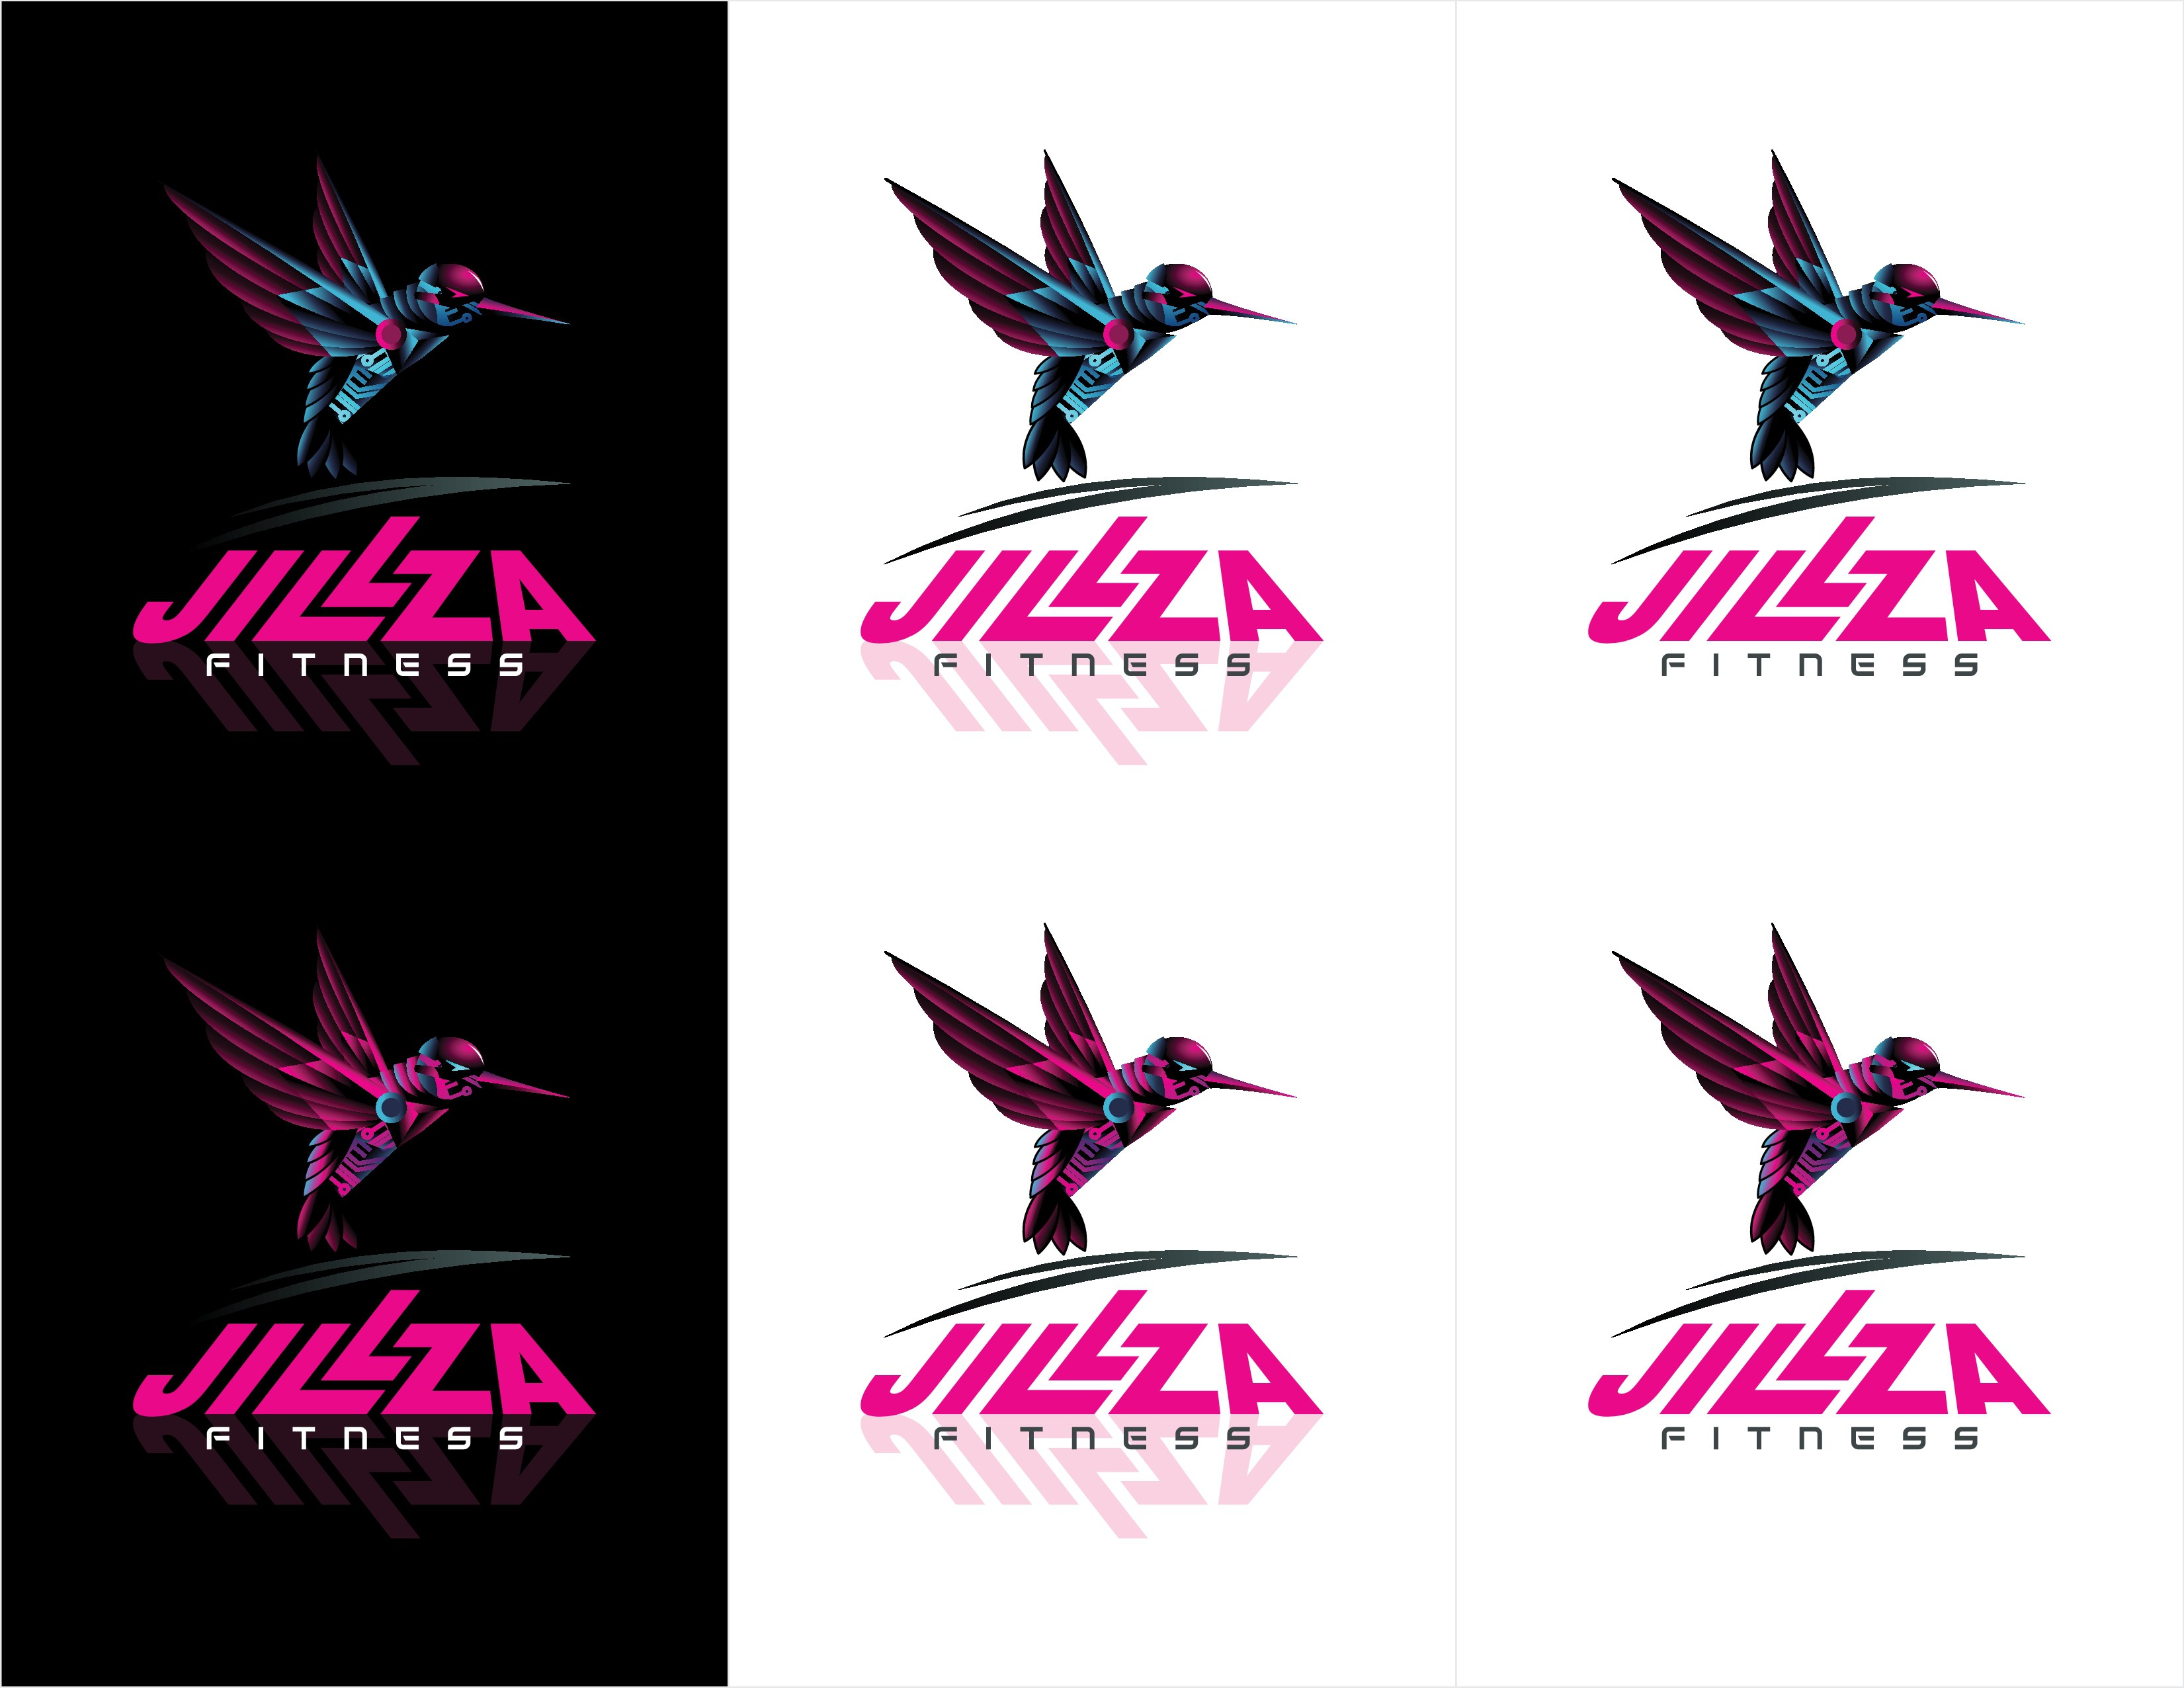 Jillza Fitness needs to jump up and stand out!